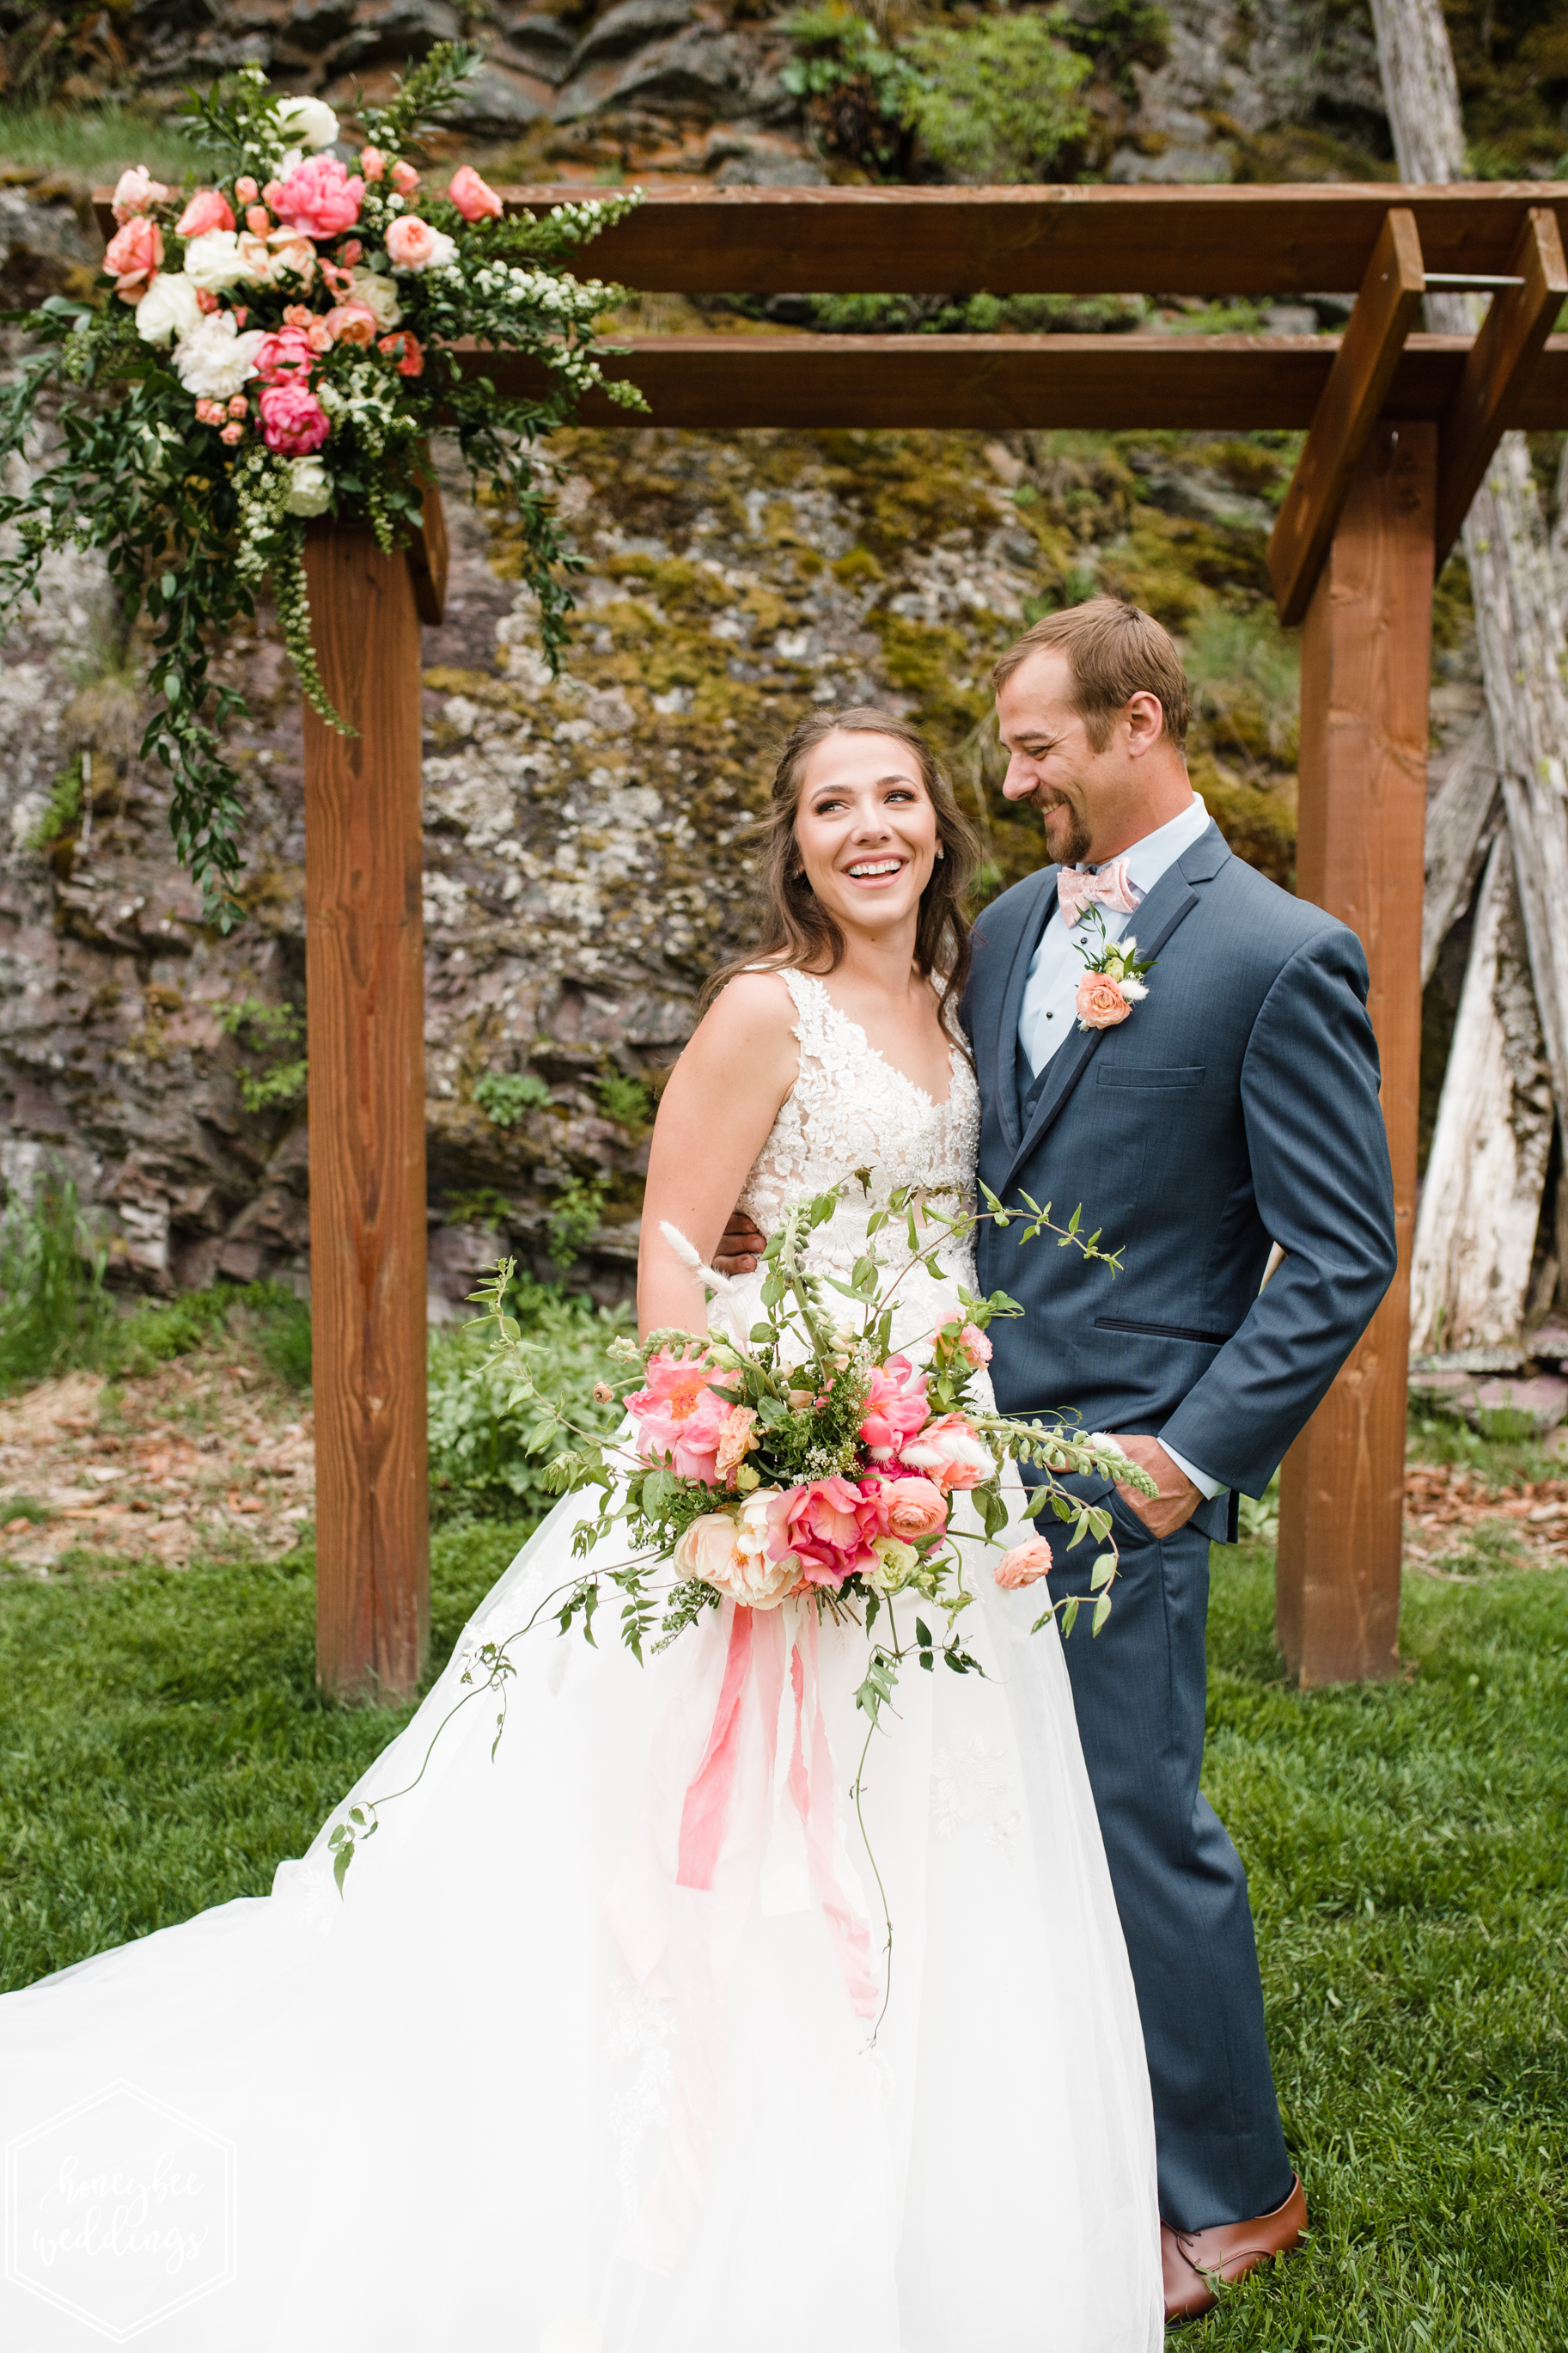 134Coral Mountain Wedding at White Raven_Honeybee Weddings_May 23, 2019-341.jpg